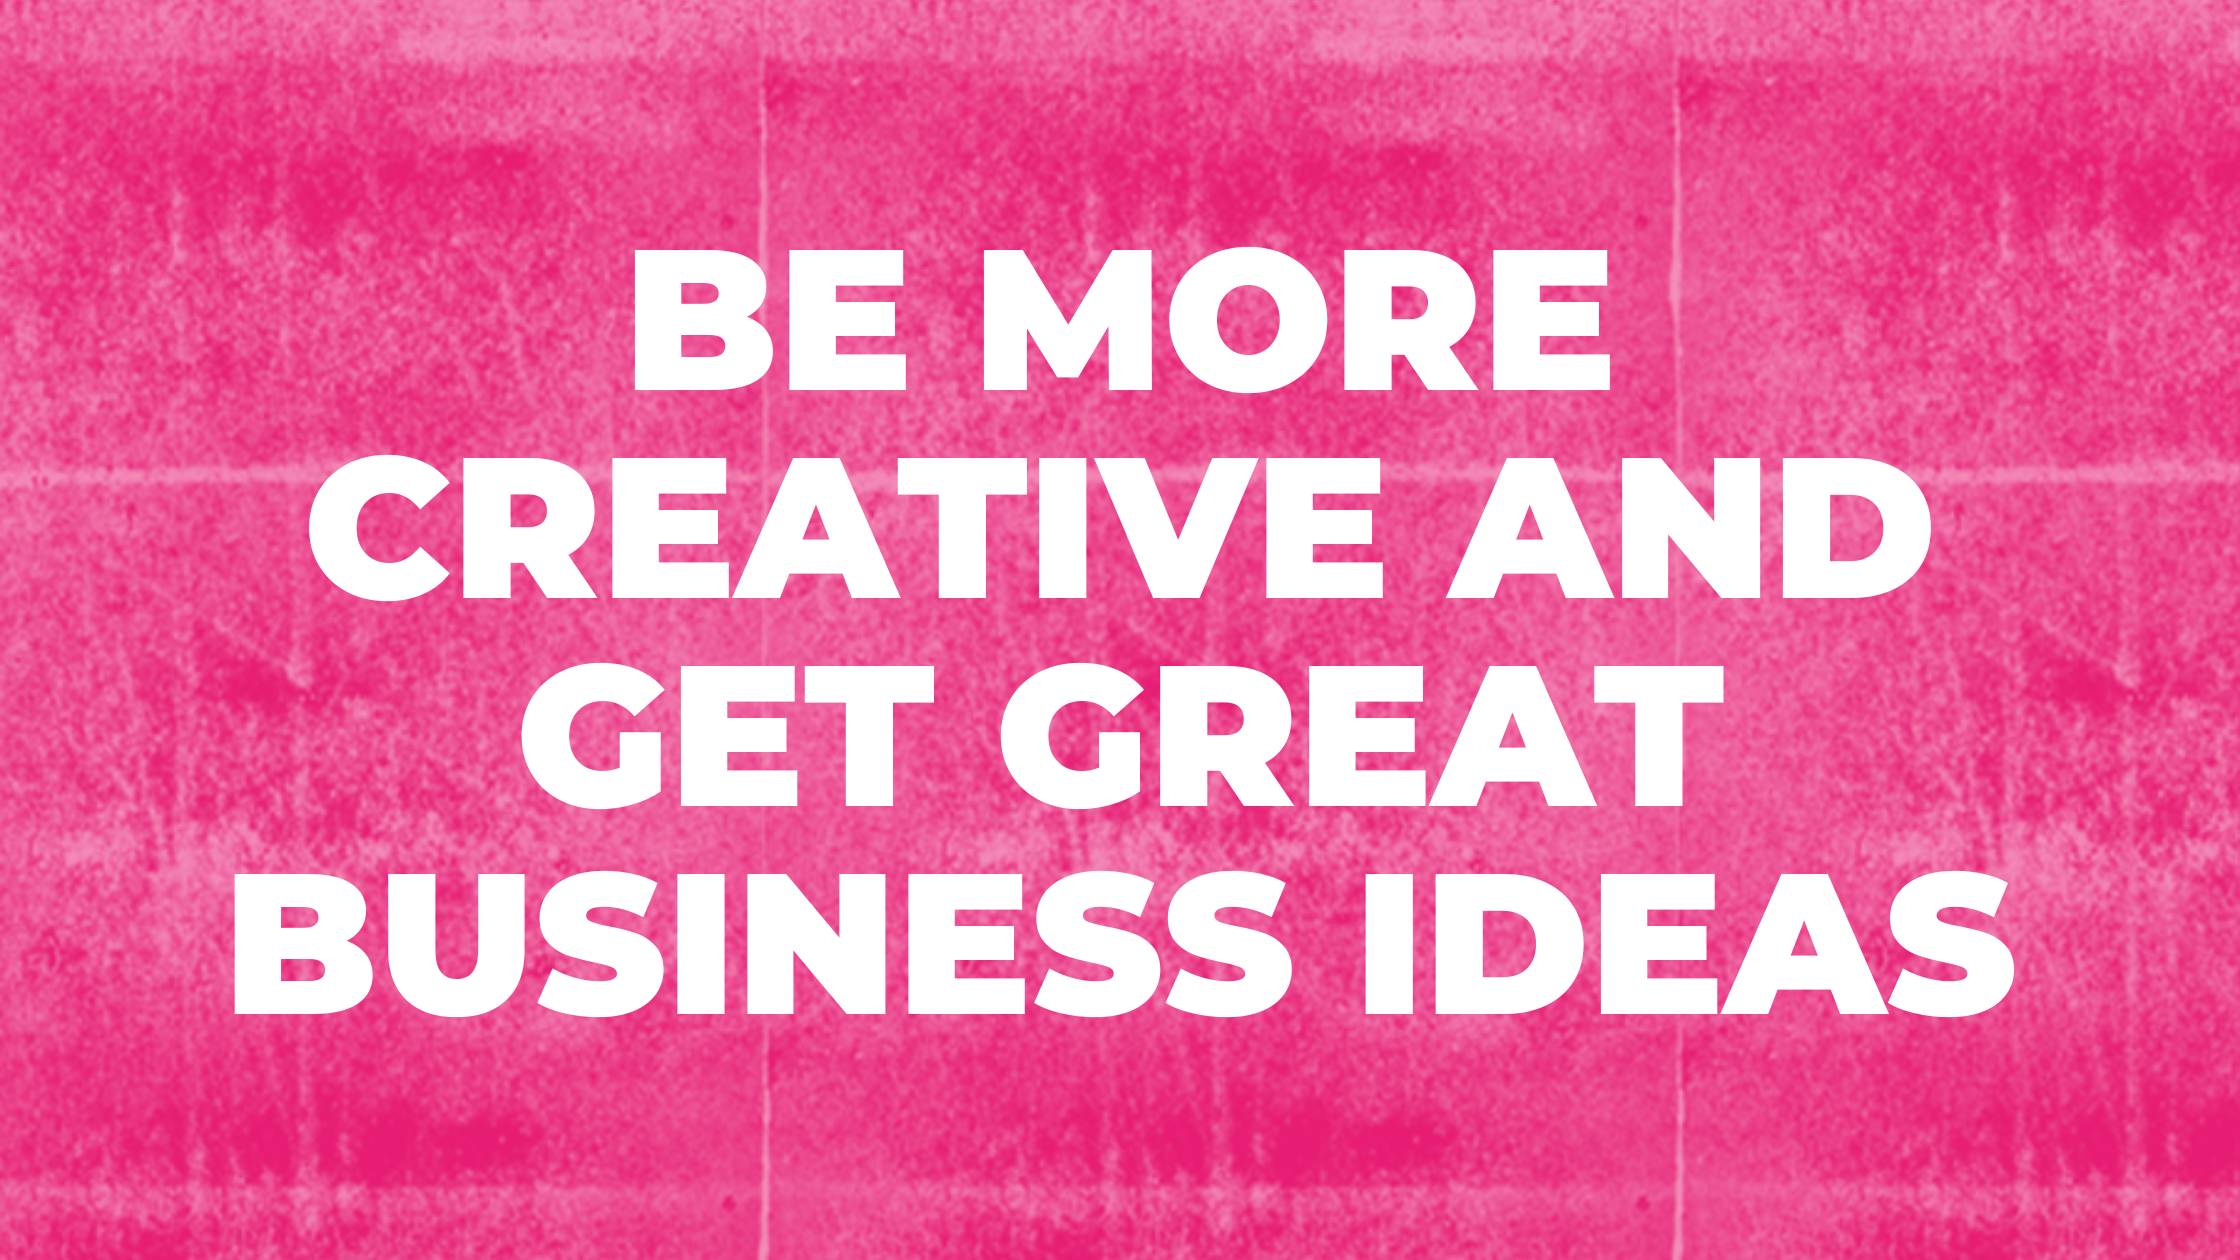 Get ideas to generate business ideas